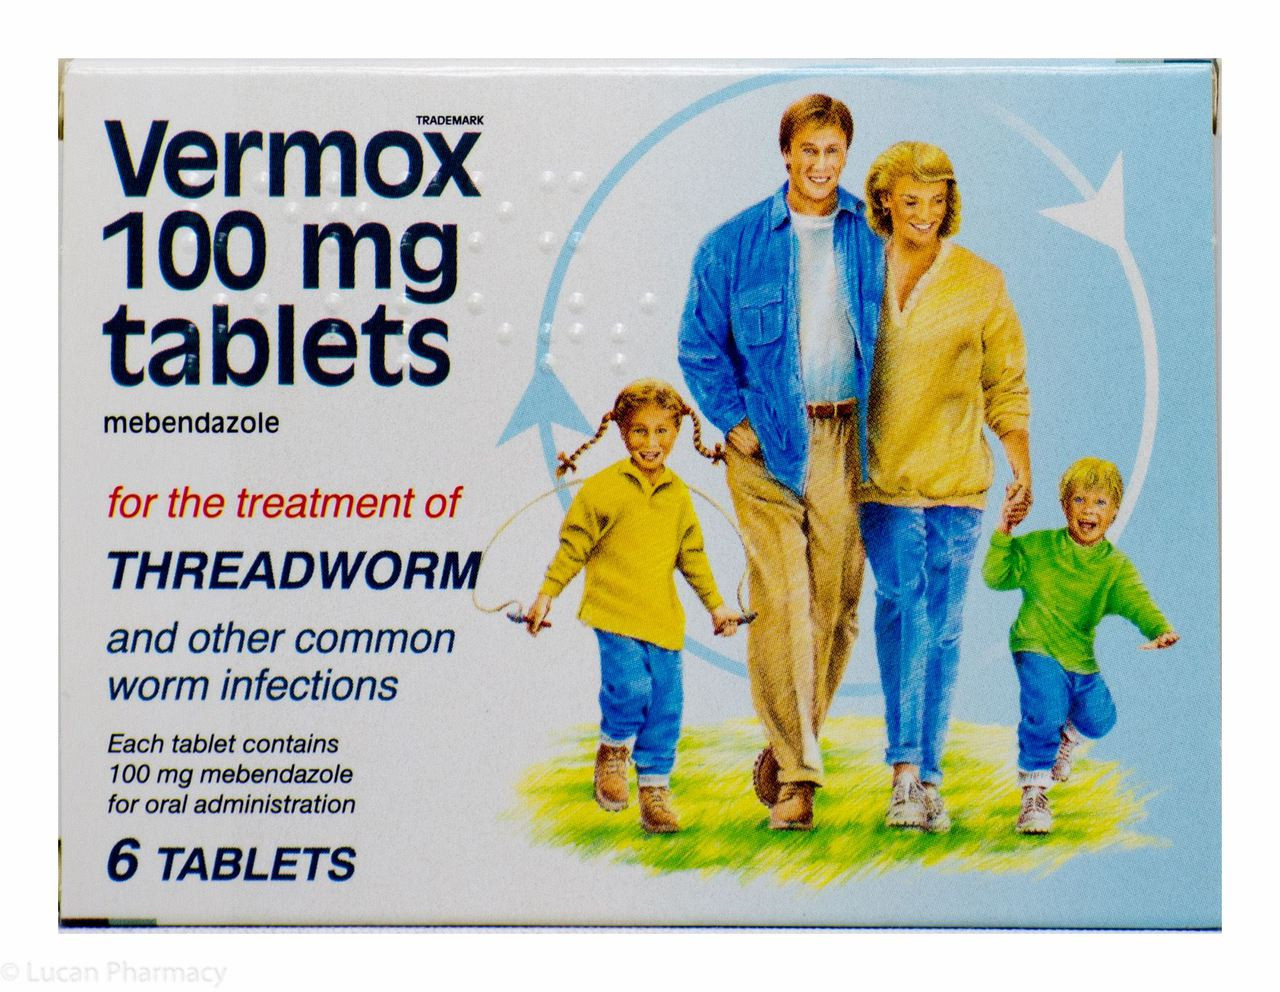 Vermox tablets: instructions for use 4